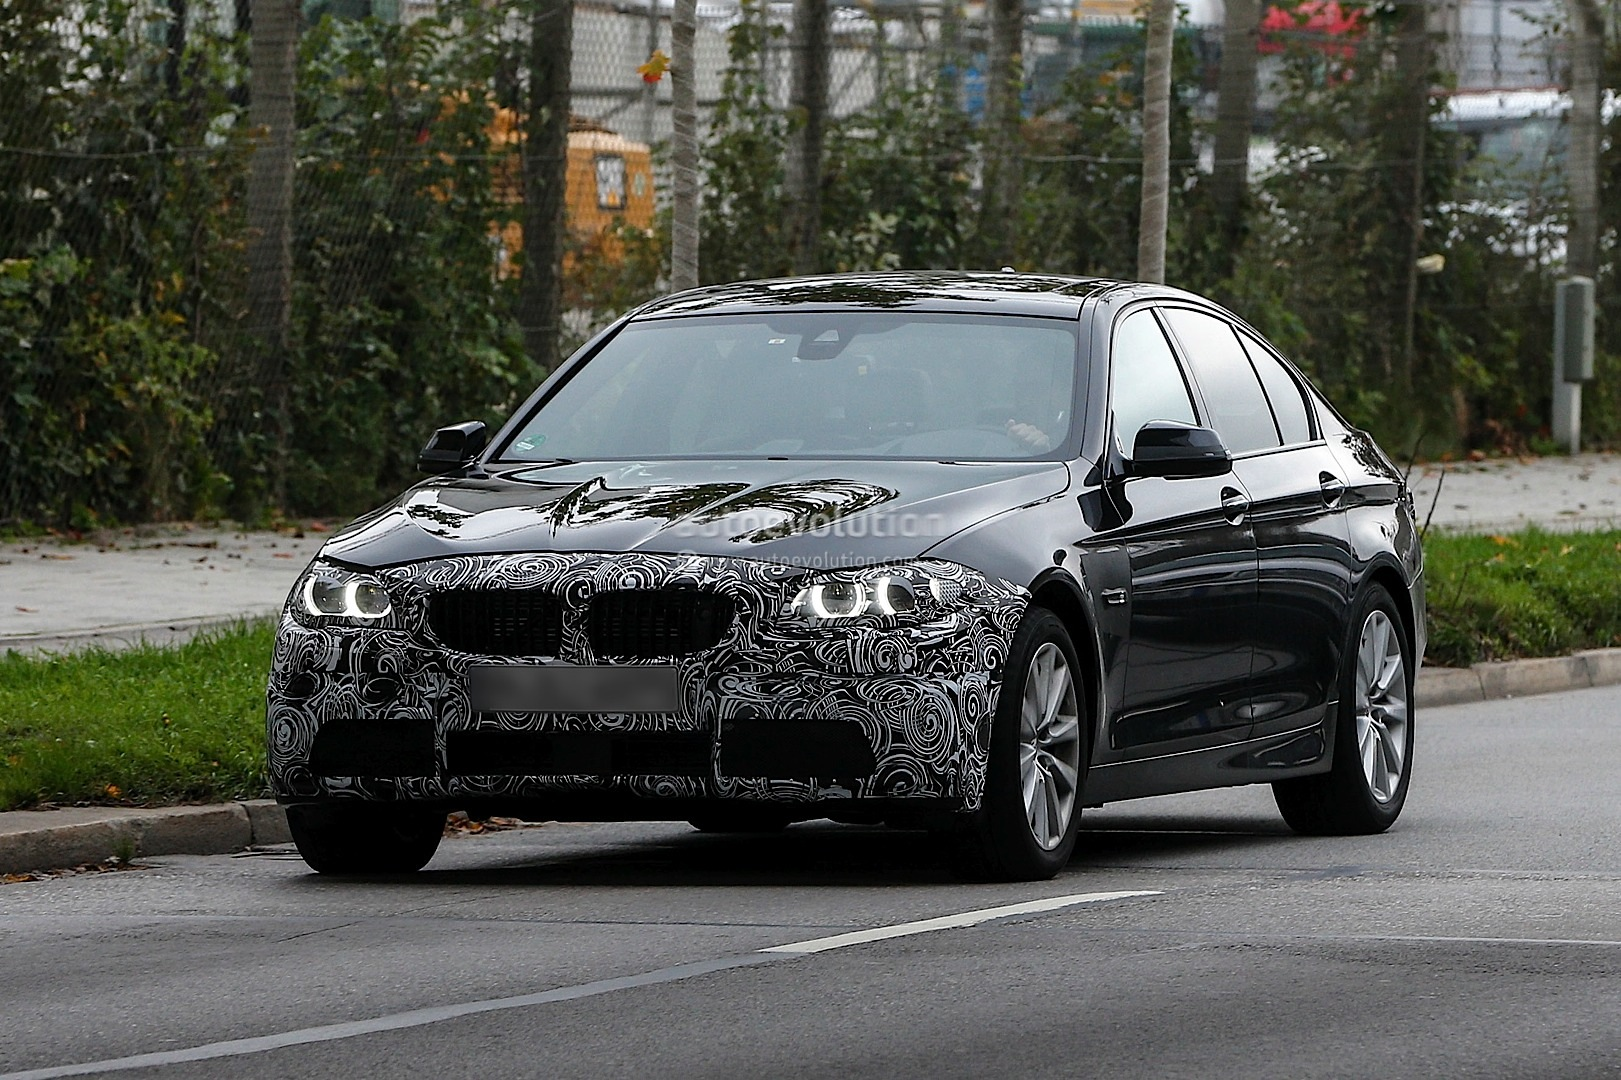 F10 BMW 5 Series facelift